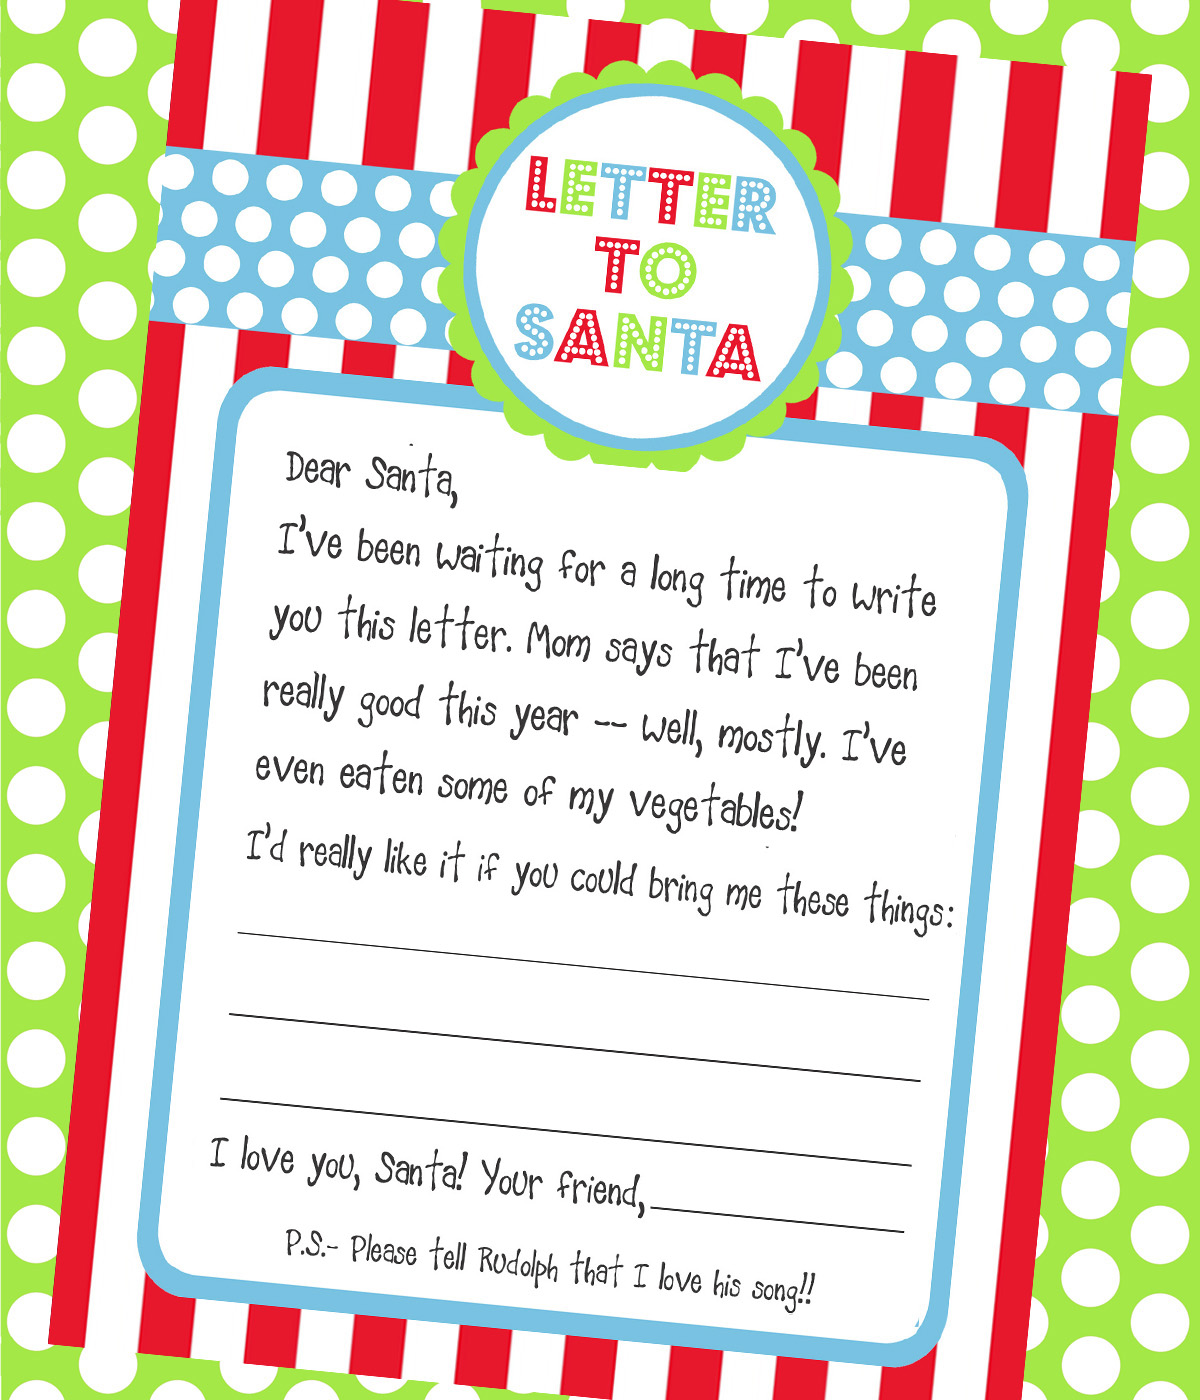 Punchy image pertaining to printable santa letters